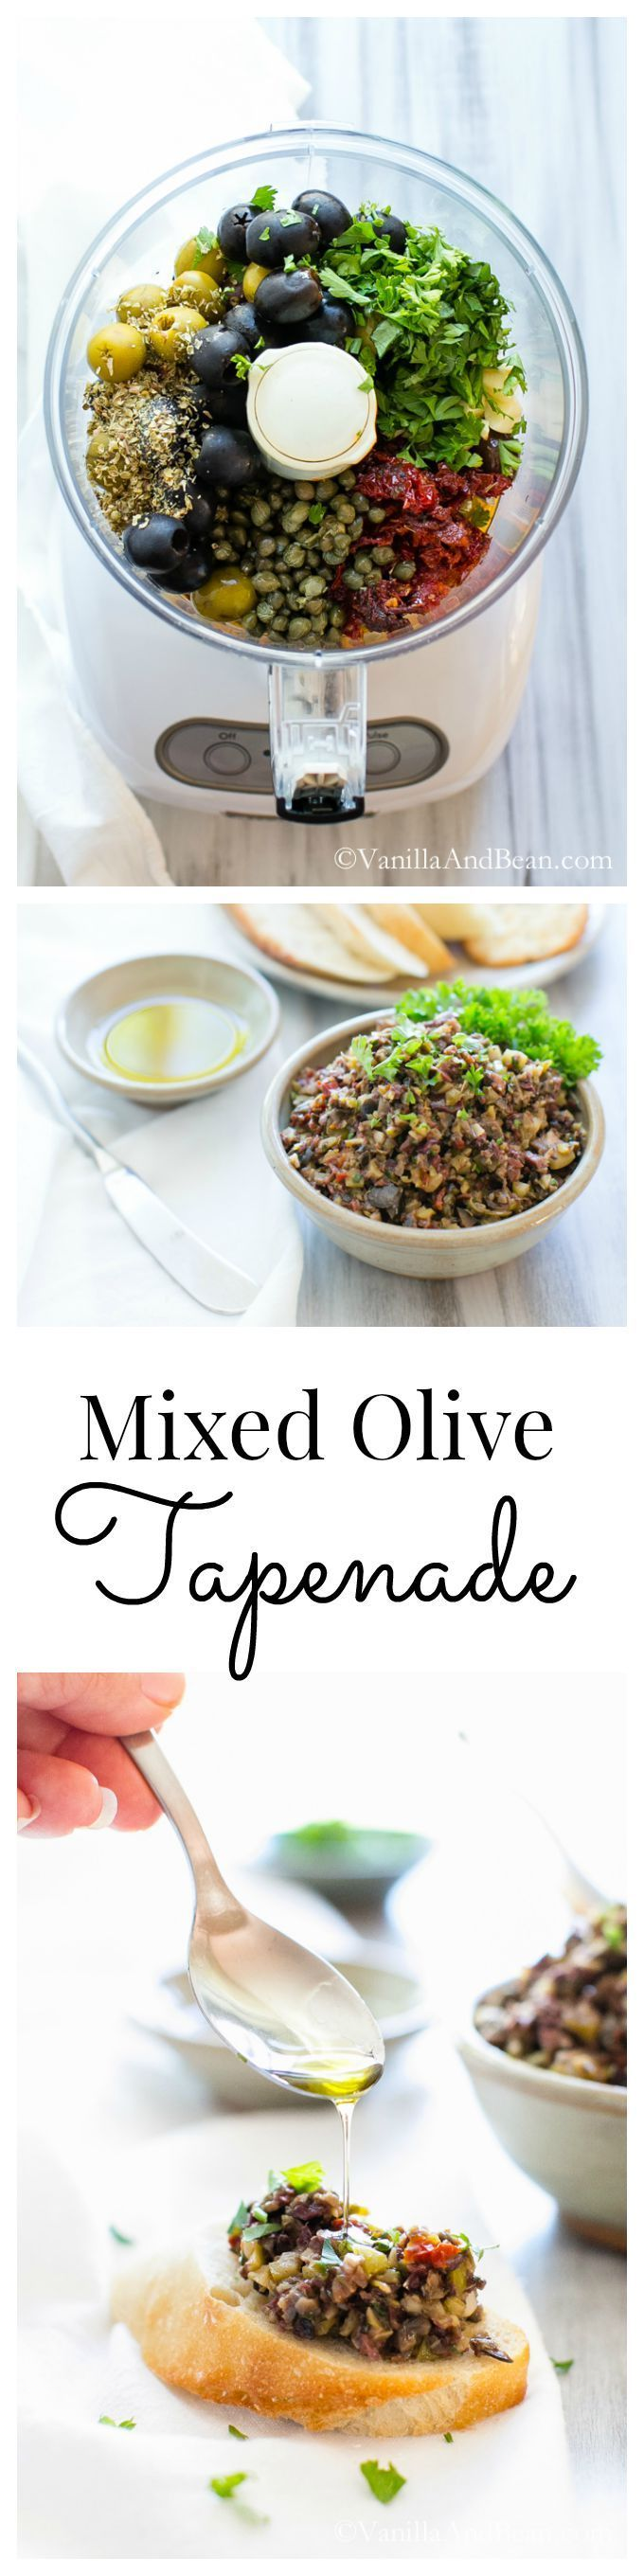 Garlicky, briny and packed full of salty flavors, this appetizer, spread or relish comes together in 10 minutes; Mixed Olive Tapenade   Vegan + Gluten Free   Vanilla And Bean